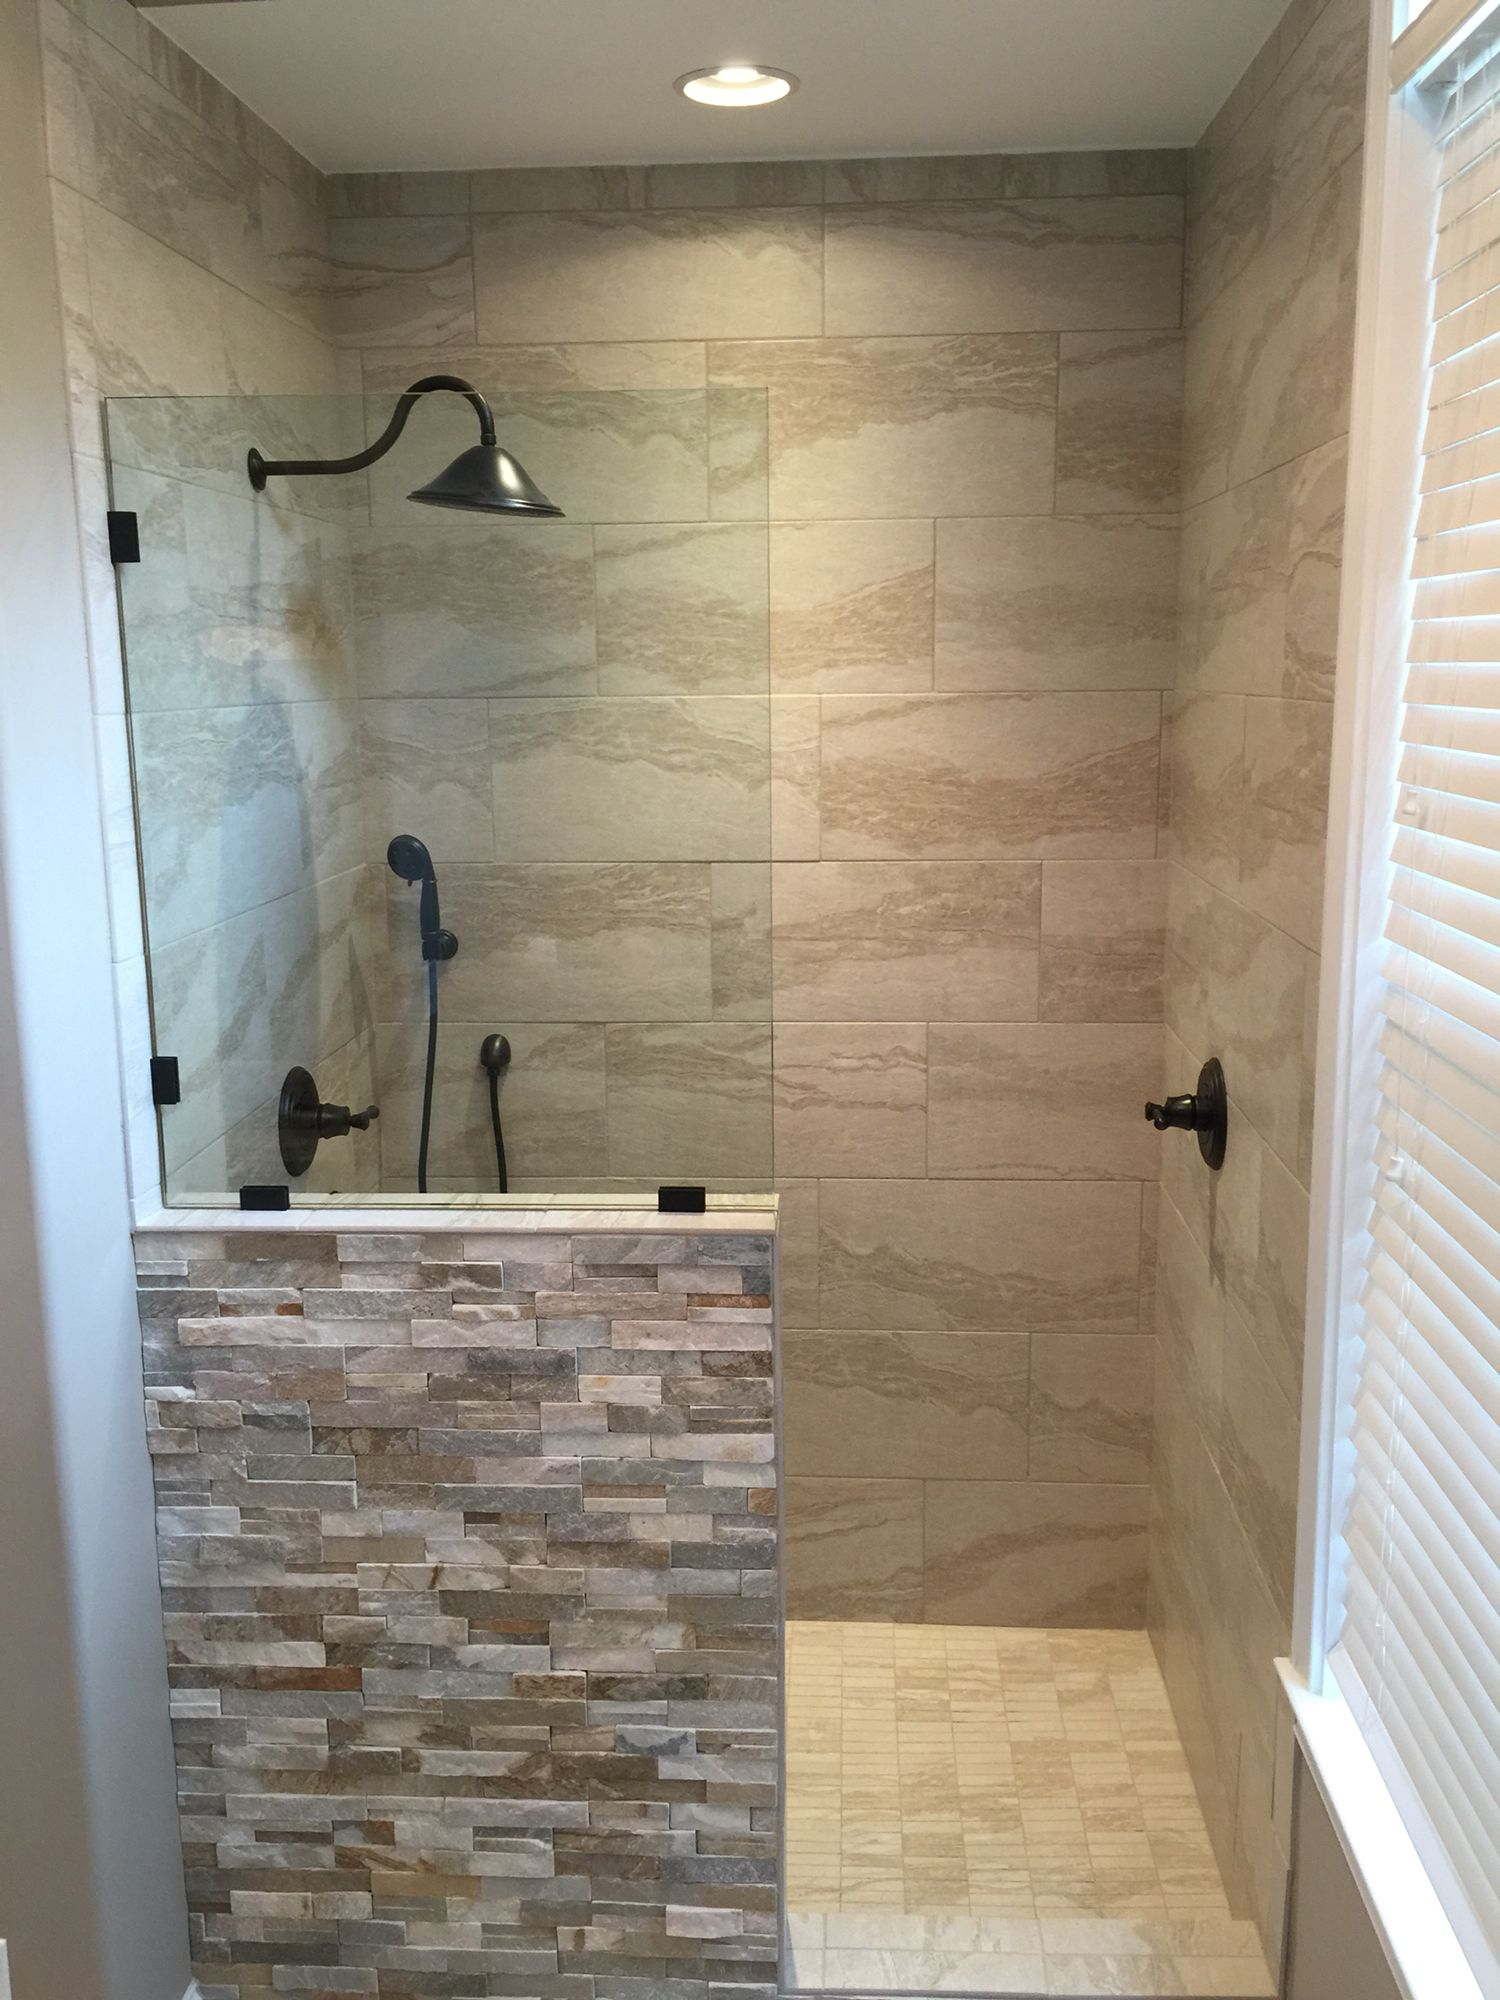 New shower replaced the old jacuzzi tub - Shower ideas | Pinterest ...